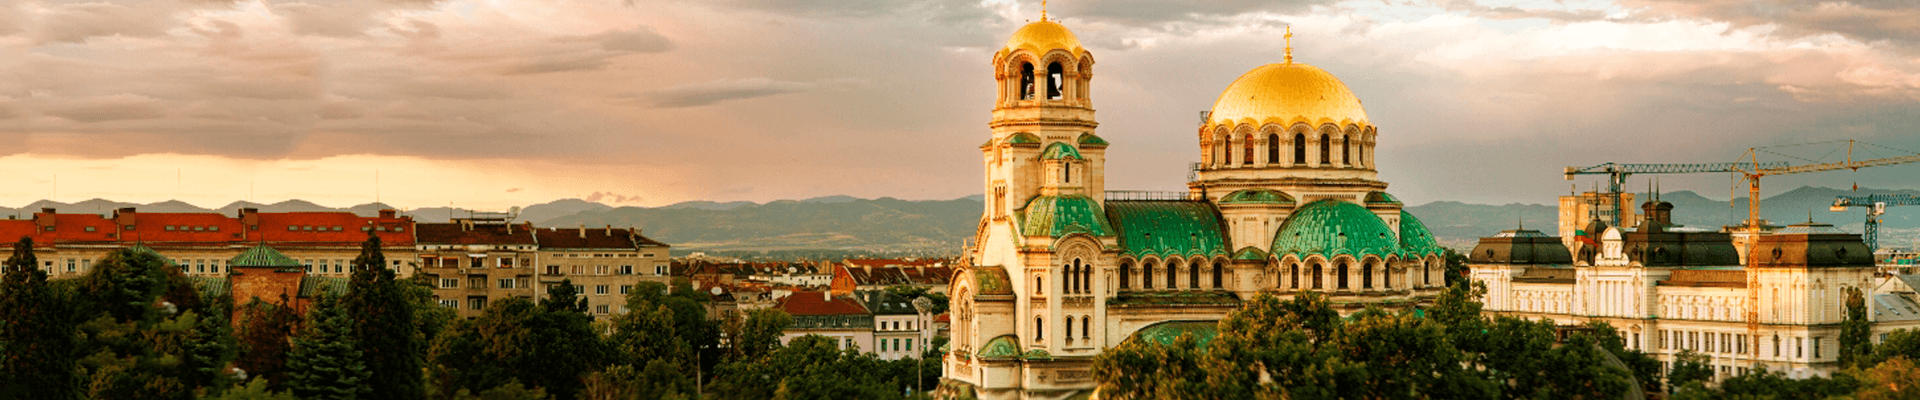 A golden domed cathedral with green tiles rises above a city in Israel